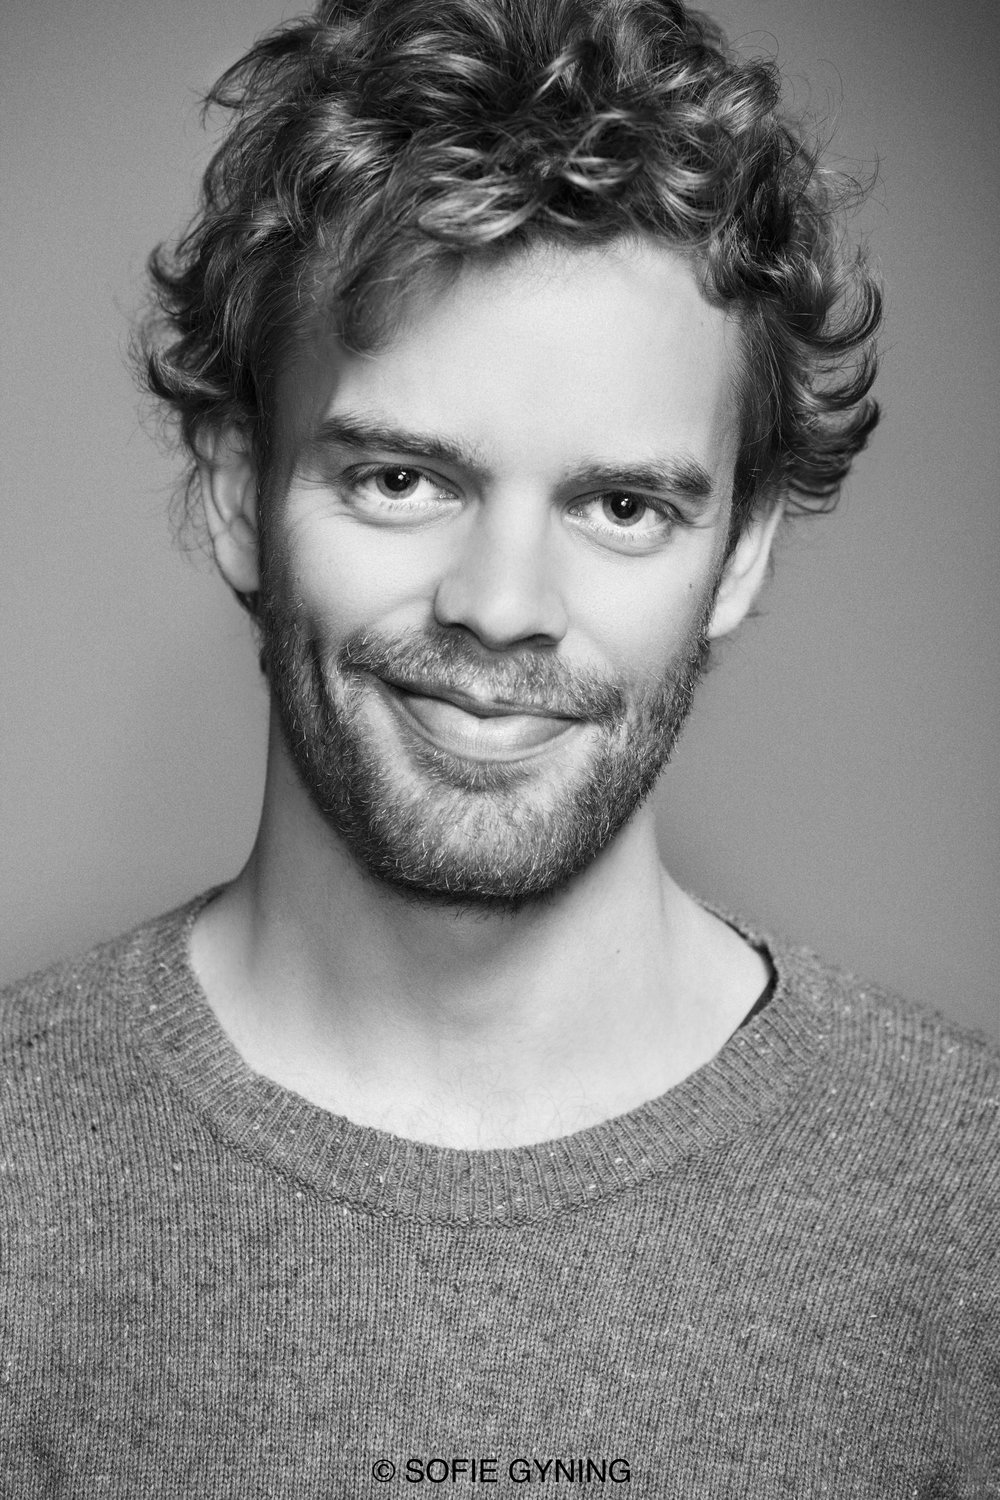 Peter Kirk (Tamino)  studied at the University of Wales, the Royal College of Music International Opera School (graduating with the Eric Shilling Prize for Opera), and on l'Opéra national du Rhin's Young Artist's Programme. Kirk made his Royal Opera (Covent Garden) debut in 2015 to critical acclaim as Chulak  The Firework-Maker's Daughter , other engagements that season included  Judas   Maccabeus  with the Silesian Philharmonic Orchestra in Katowice,  Dichterliebe  at the Wiltshire Music Centre, Antonio  Das Liebesverbot  at l'Opera National du Rhin and Lysander  A Midsummer Night's Dream  at the Hyogo Arts Centre, Japan. Other roles include Lucano  L'incoronazione di Poppea  (ETO), Charlie  Mahagonny Songspiel  (London Philharmonic Orchestra), and Congressional Page  Two   Boys  (ENO). In the 2016/2017 season Peter sings the role of Lysander  A Midsummer Night's Dream  (Jubilee Hall, Aldeburgh), returns to l'Opéra national du Rhin to play Pasek in  The Cunning Little Vixen  and the 3rd Jew in  Salomé , and will return to the role of Paolino in  Il Matrimonio Segreto  for a UK tour. In 2018, Peter makes debuts with conductor Yutaka Sado and the Vienna Tonkünstler Orchestra, and the Münchner Symphoniker under David Reiland.